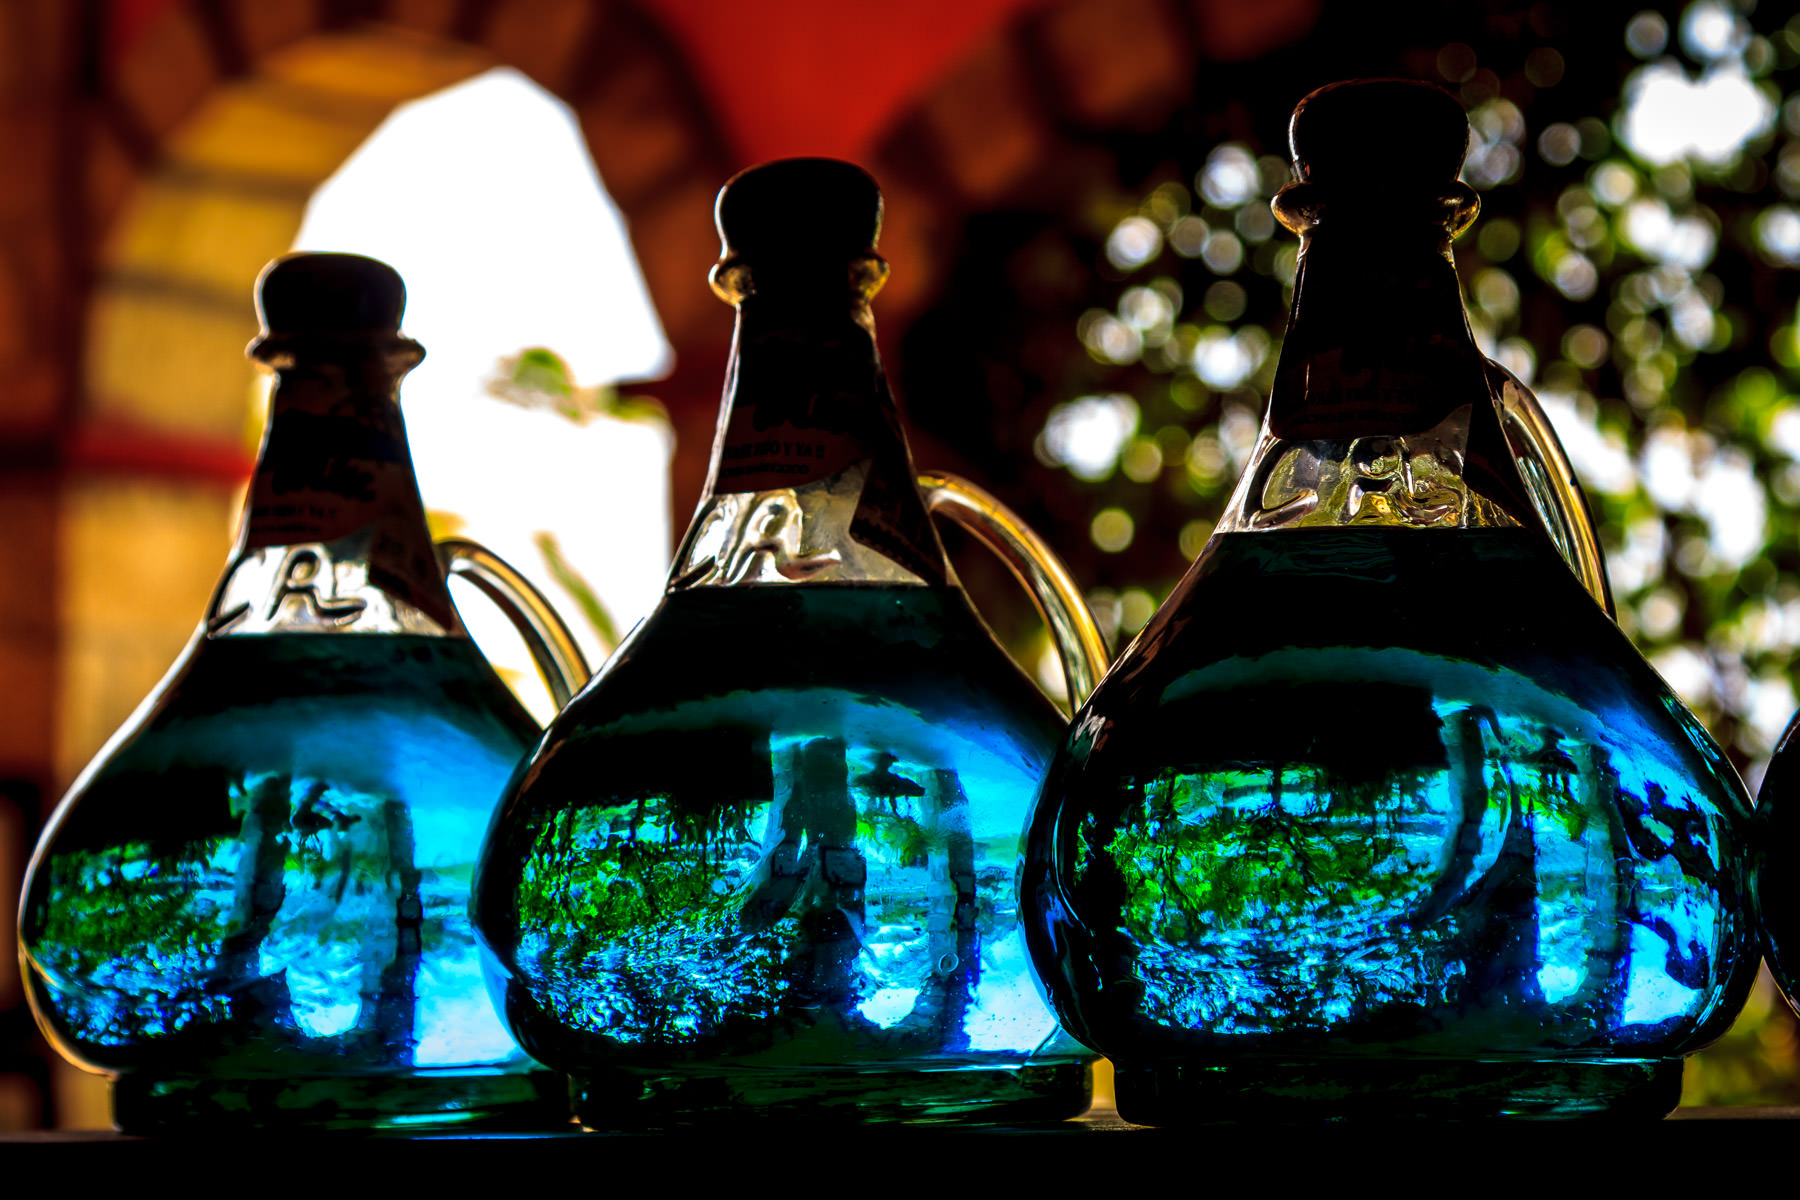 Sunlight refracts through jugs of blue tequila at the Cava Antigua tequila store in Cozumel, Mexico.